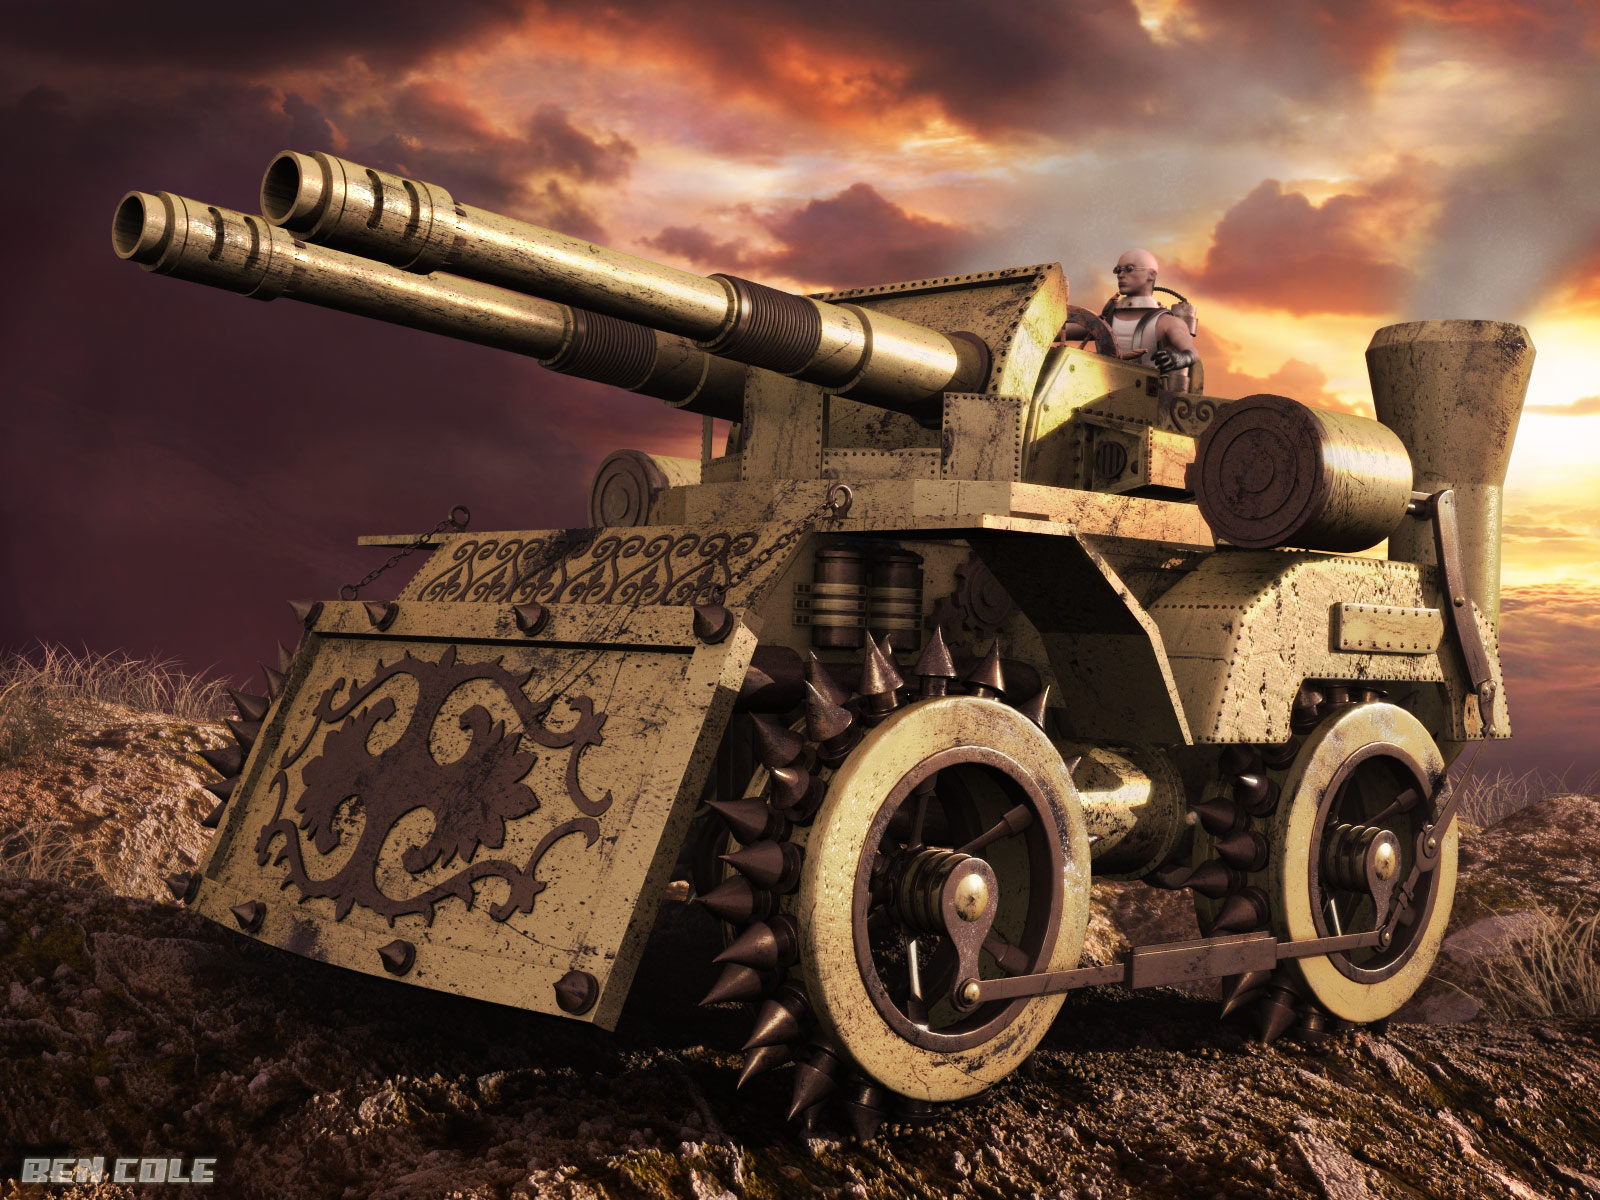 Steampunk For Kids: Steampunk Vehicles For Kids  Steampunk For K...